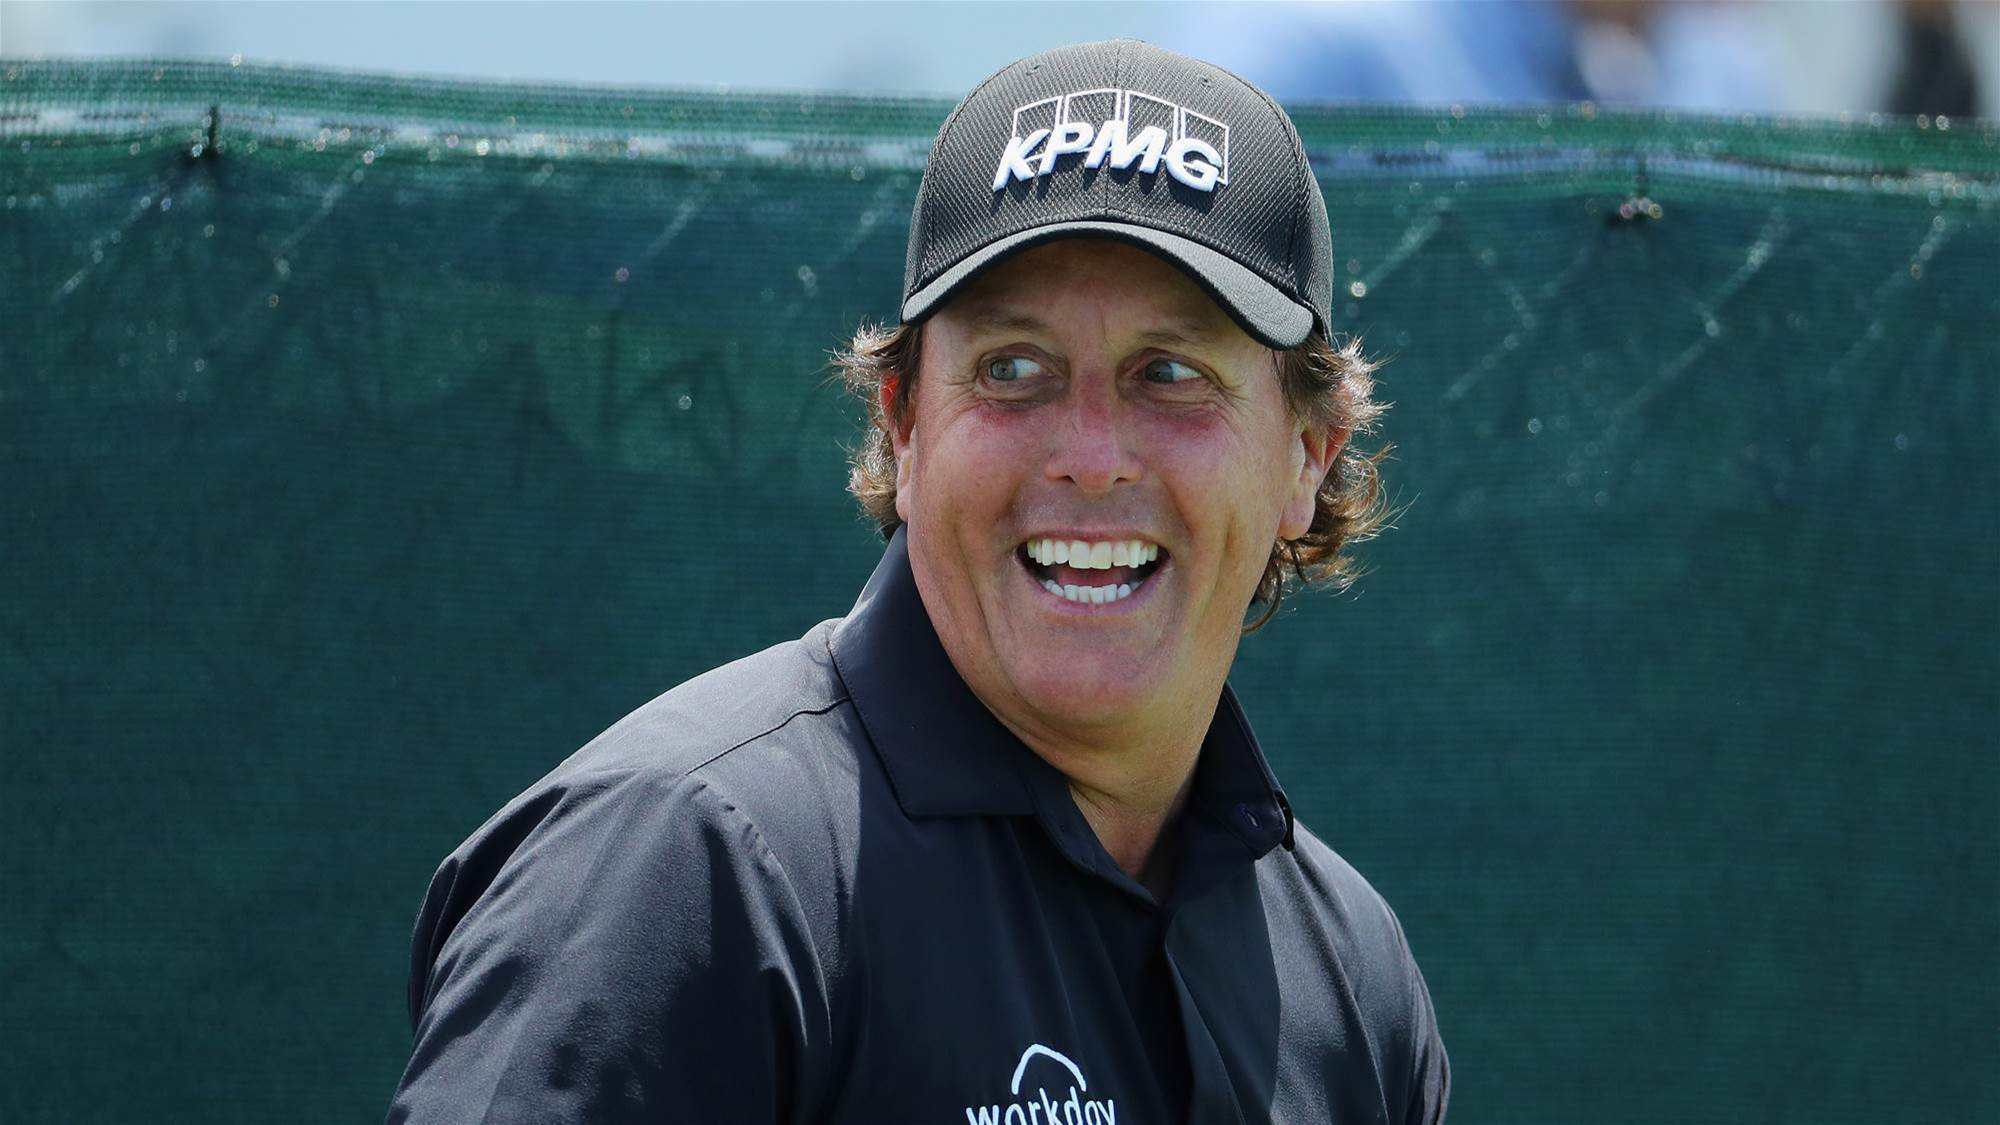 Mickelson against US Open 'carnival golf'